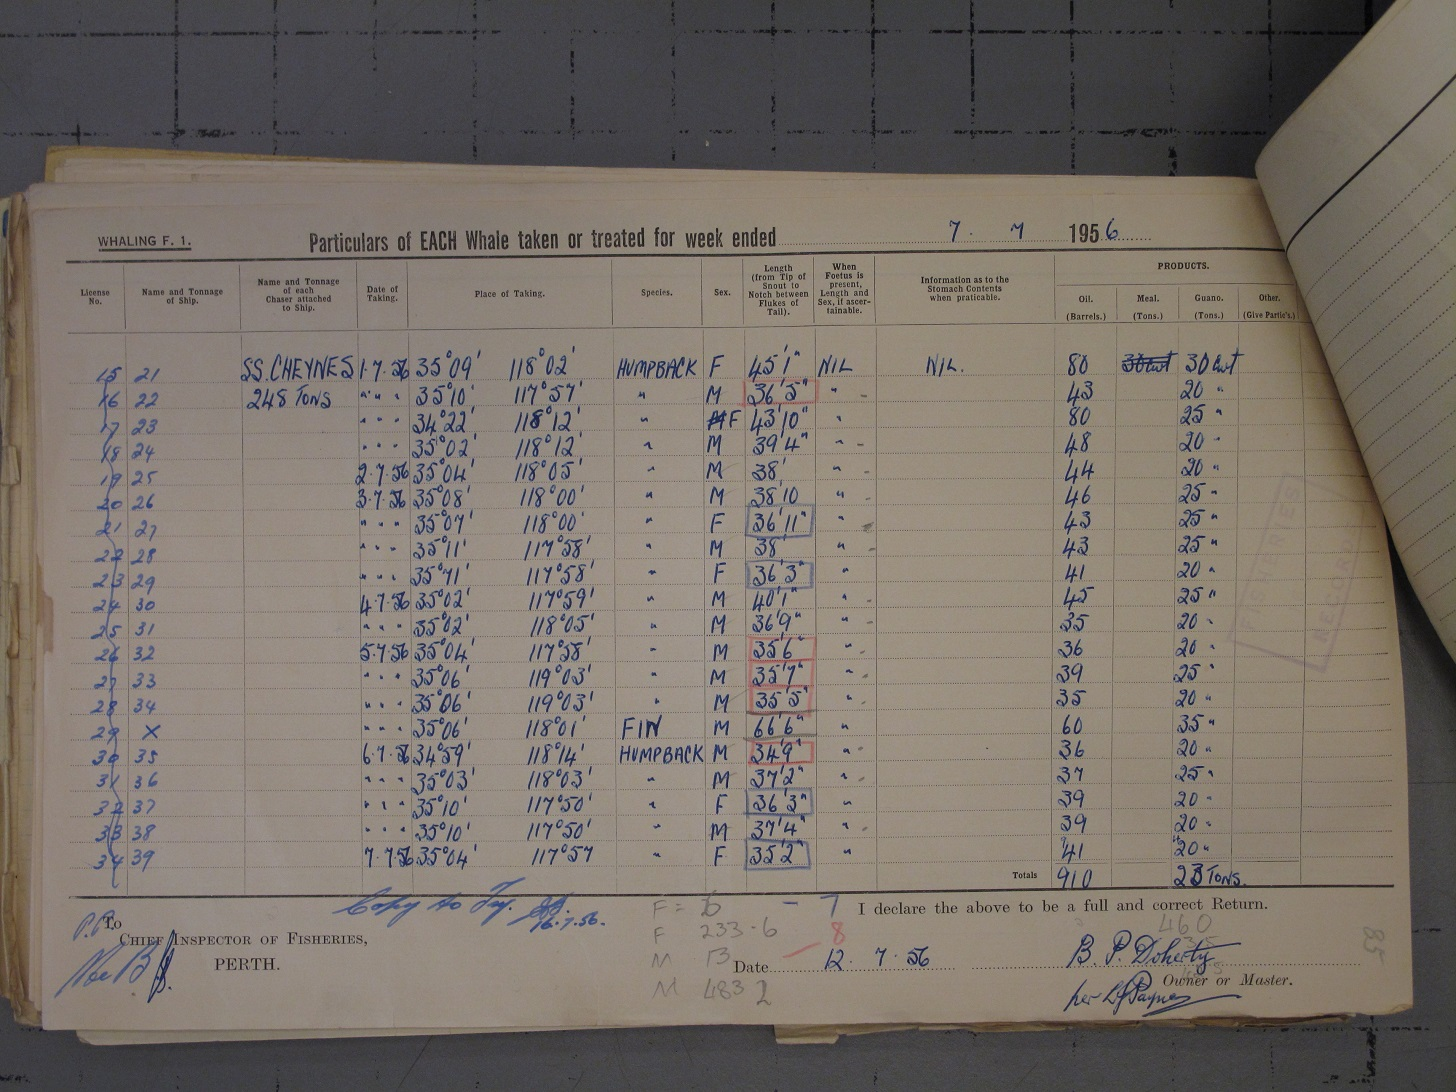 Cheynes Beach whaling station record from 1956